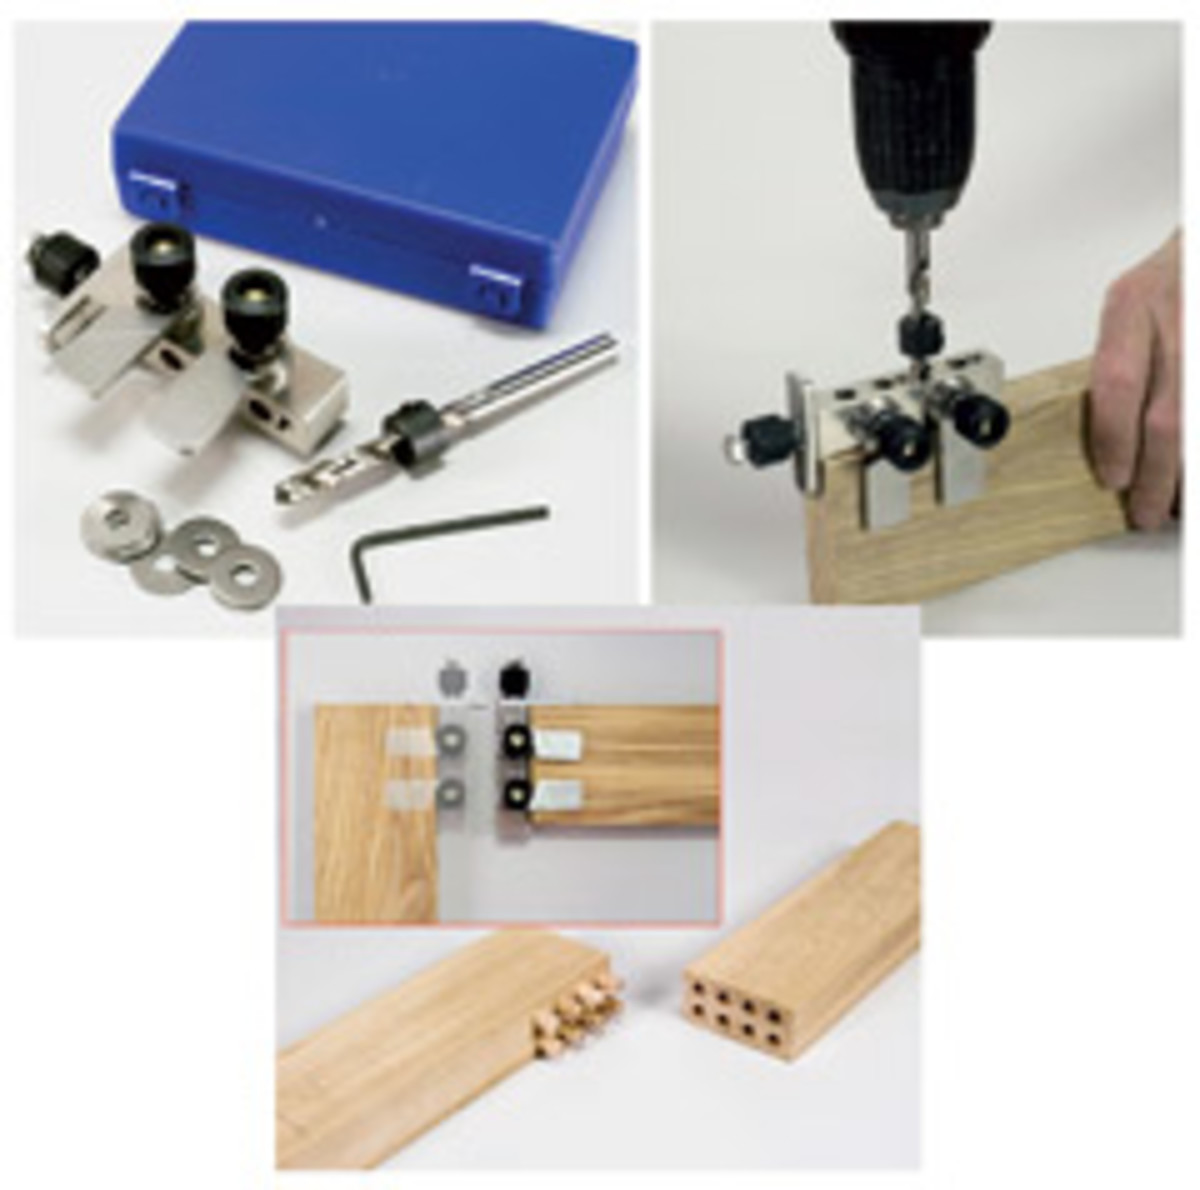 The Joint-Genie Jobber is a simple steel bar with guide holes drilled in it and a fan of steel leaves that allow the user to center the jig. Inexpensive and small, it's an ideal job-site jig.